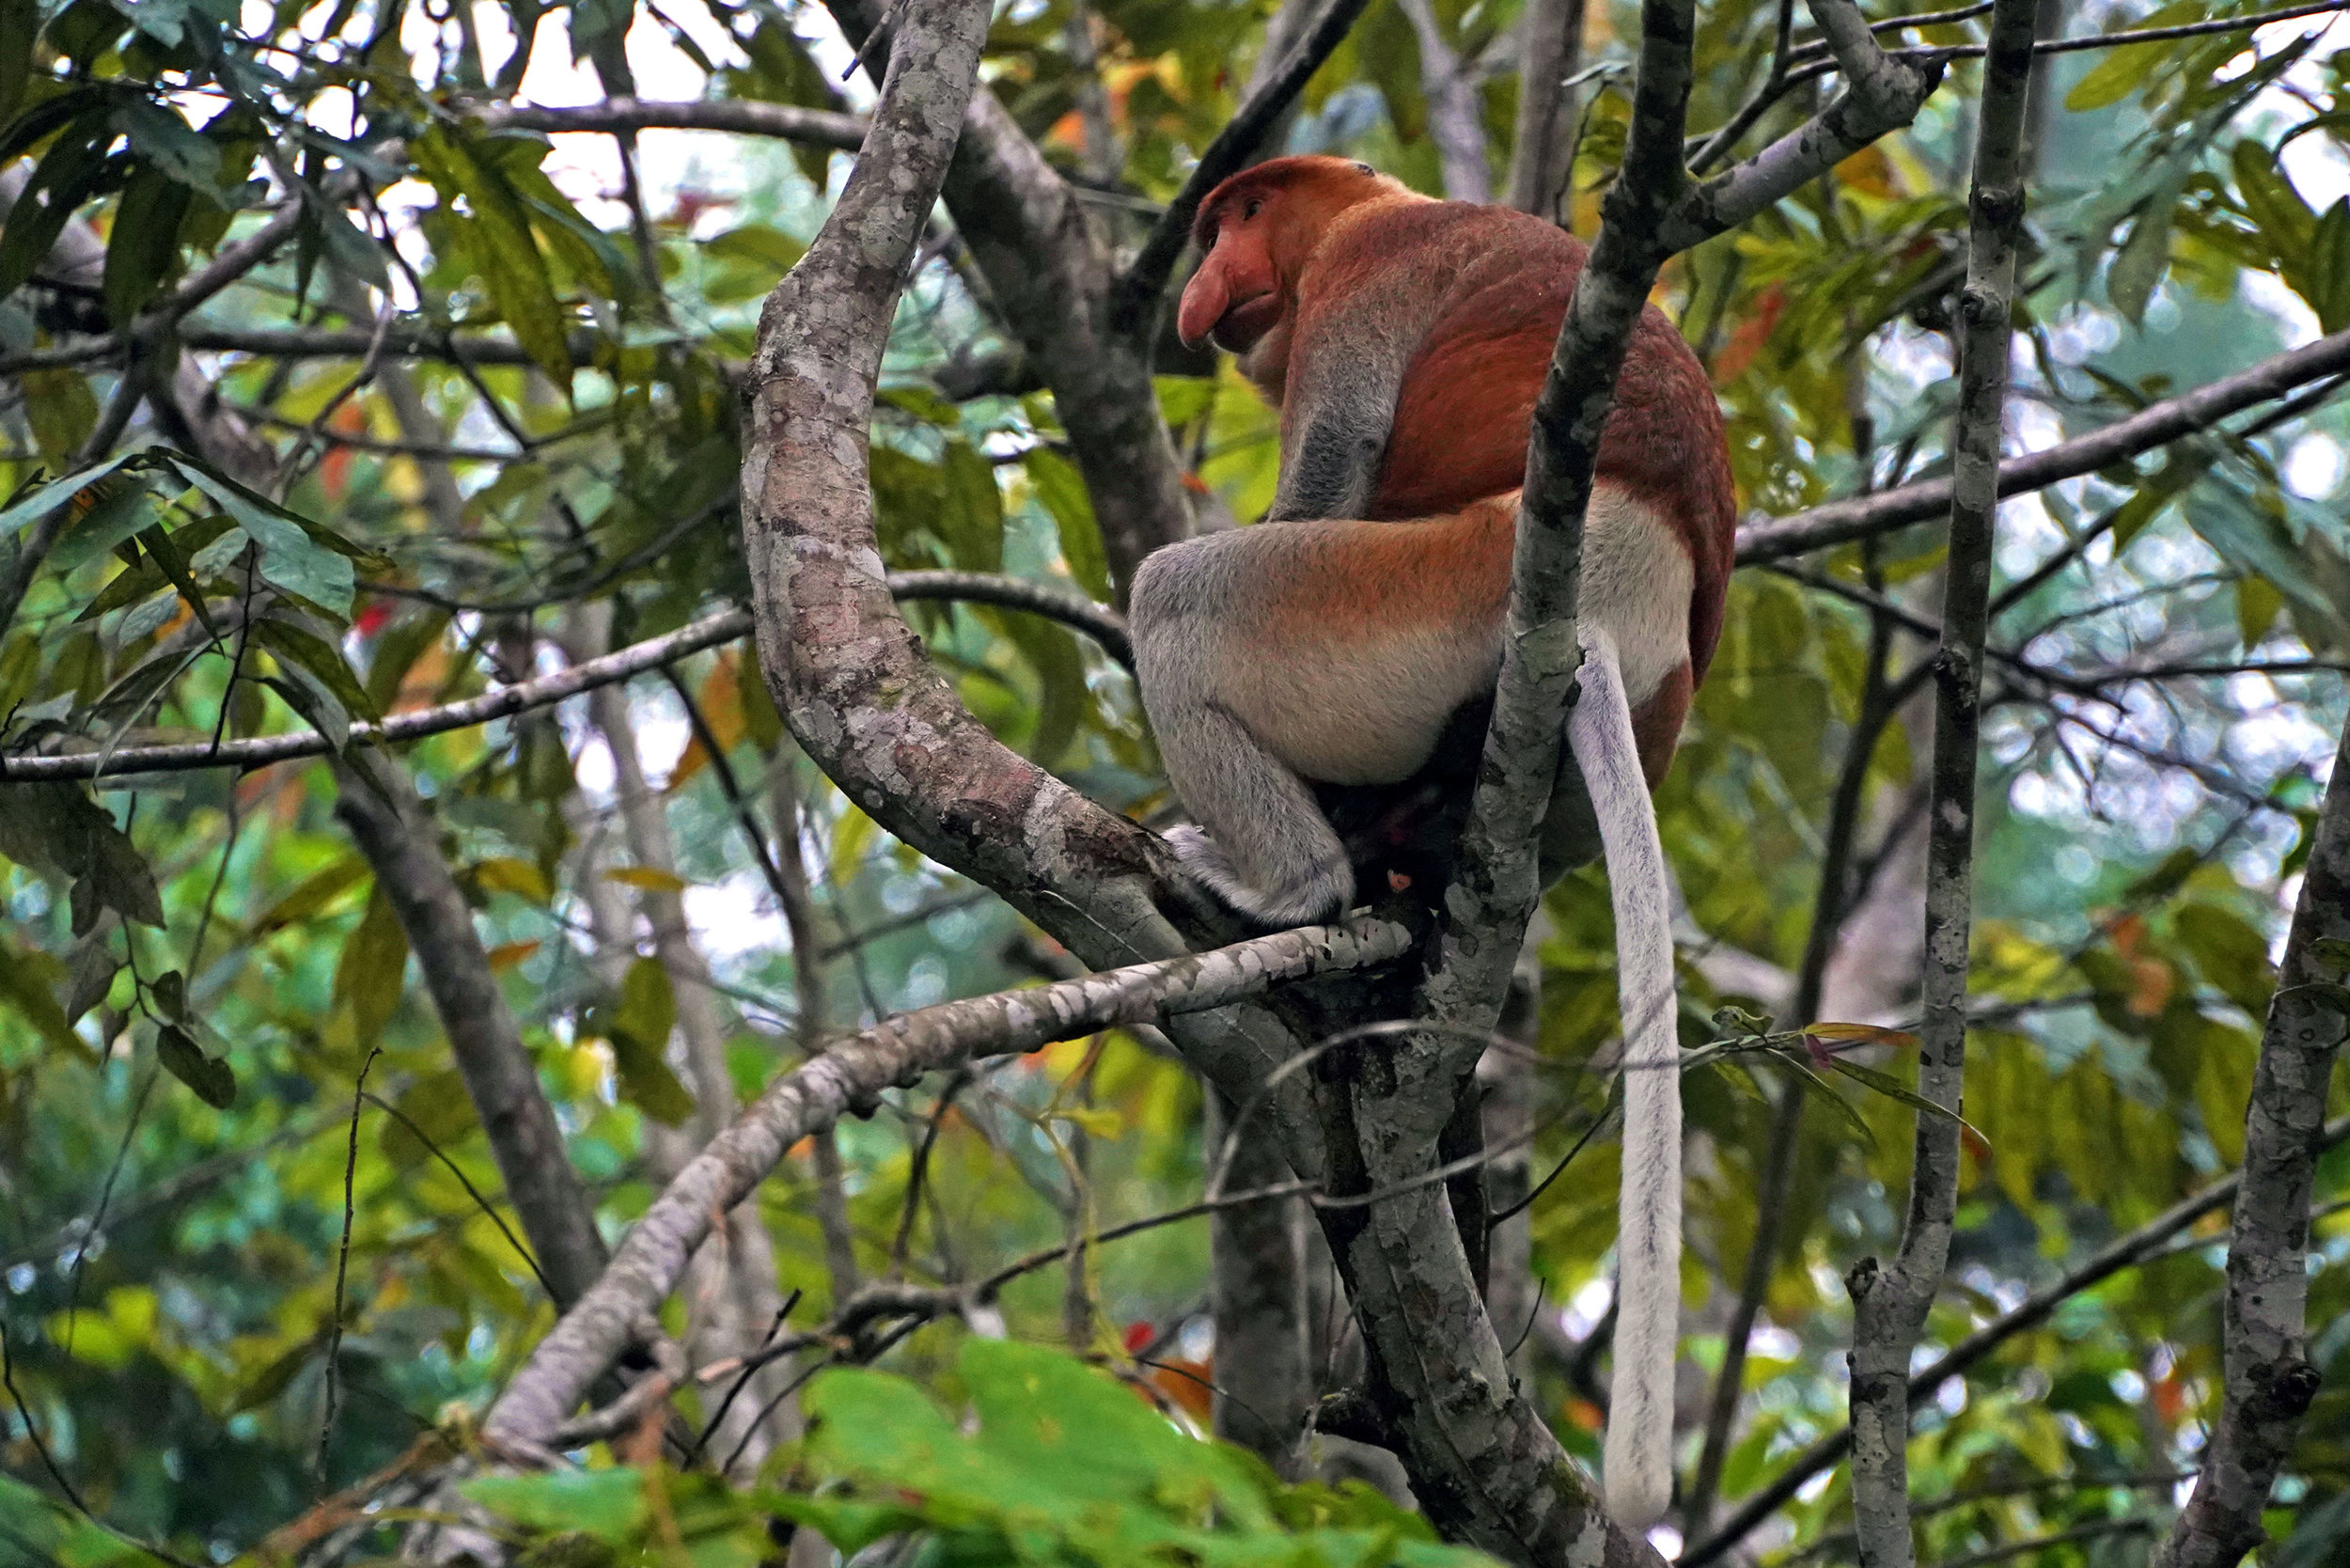 A proboscis monkey in the Kinabatagan Wildlife Sanctuary in Sabah, Malaysia.